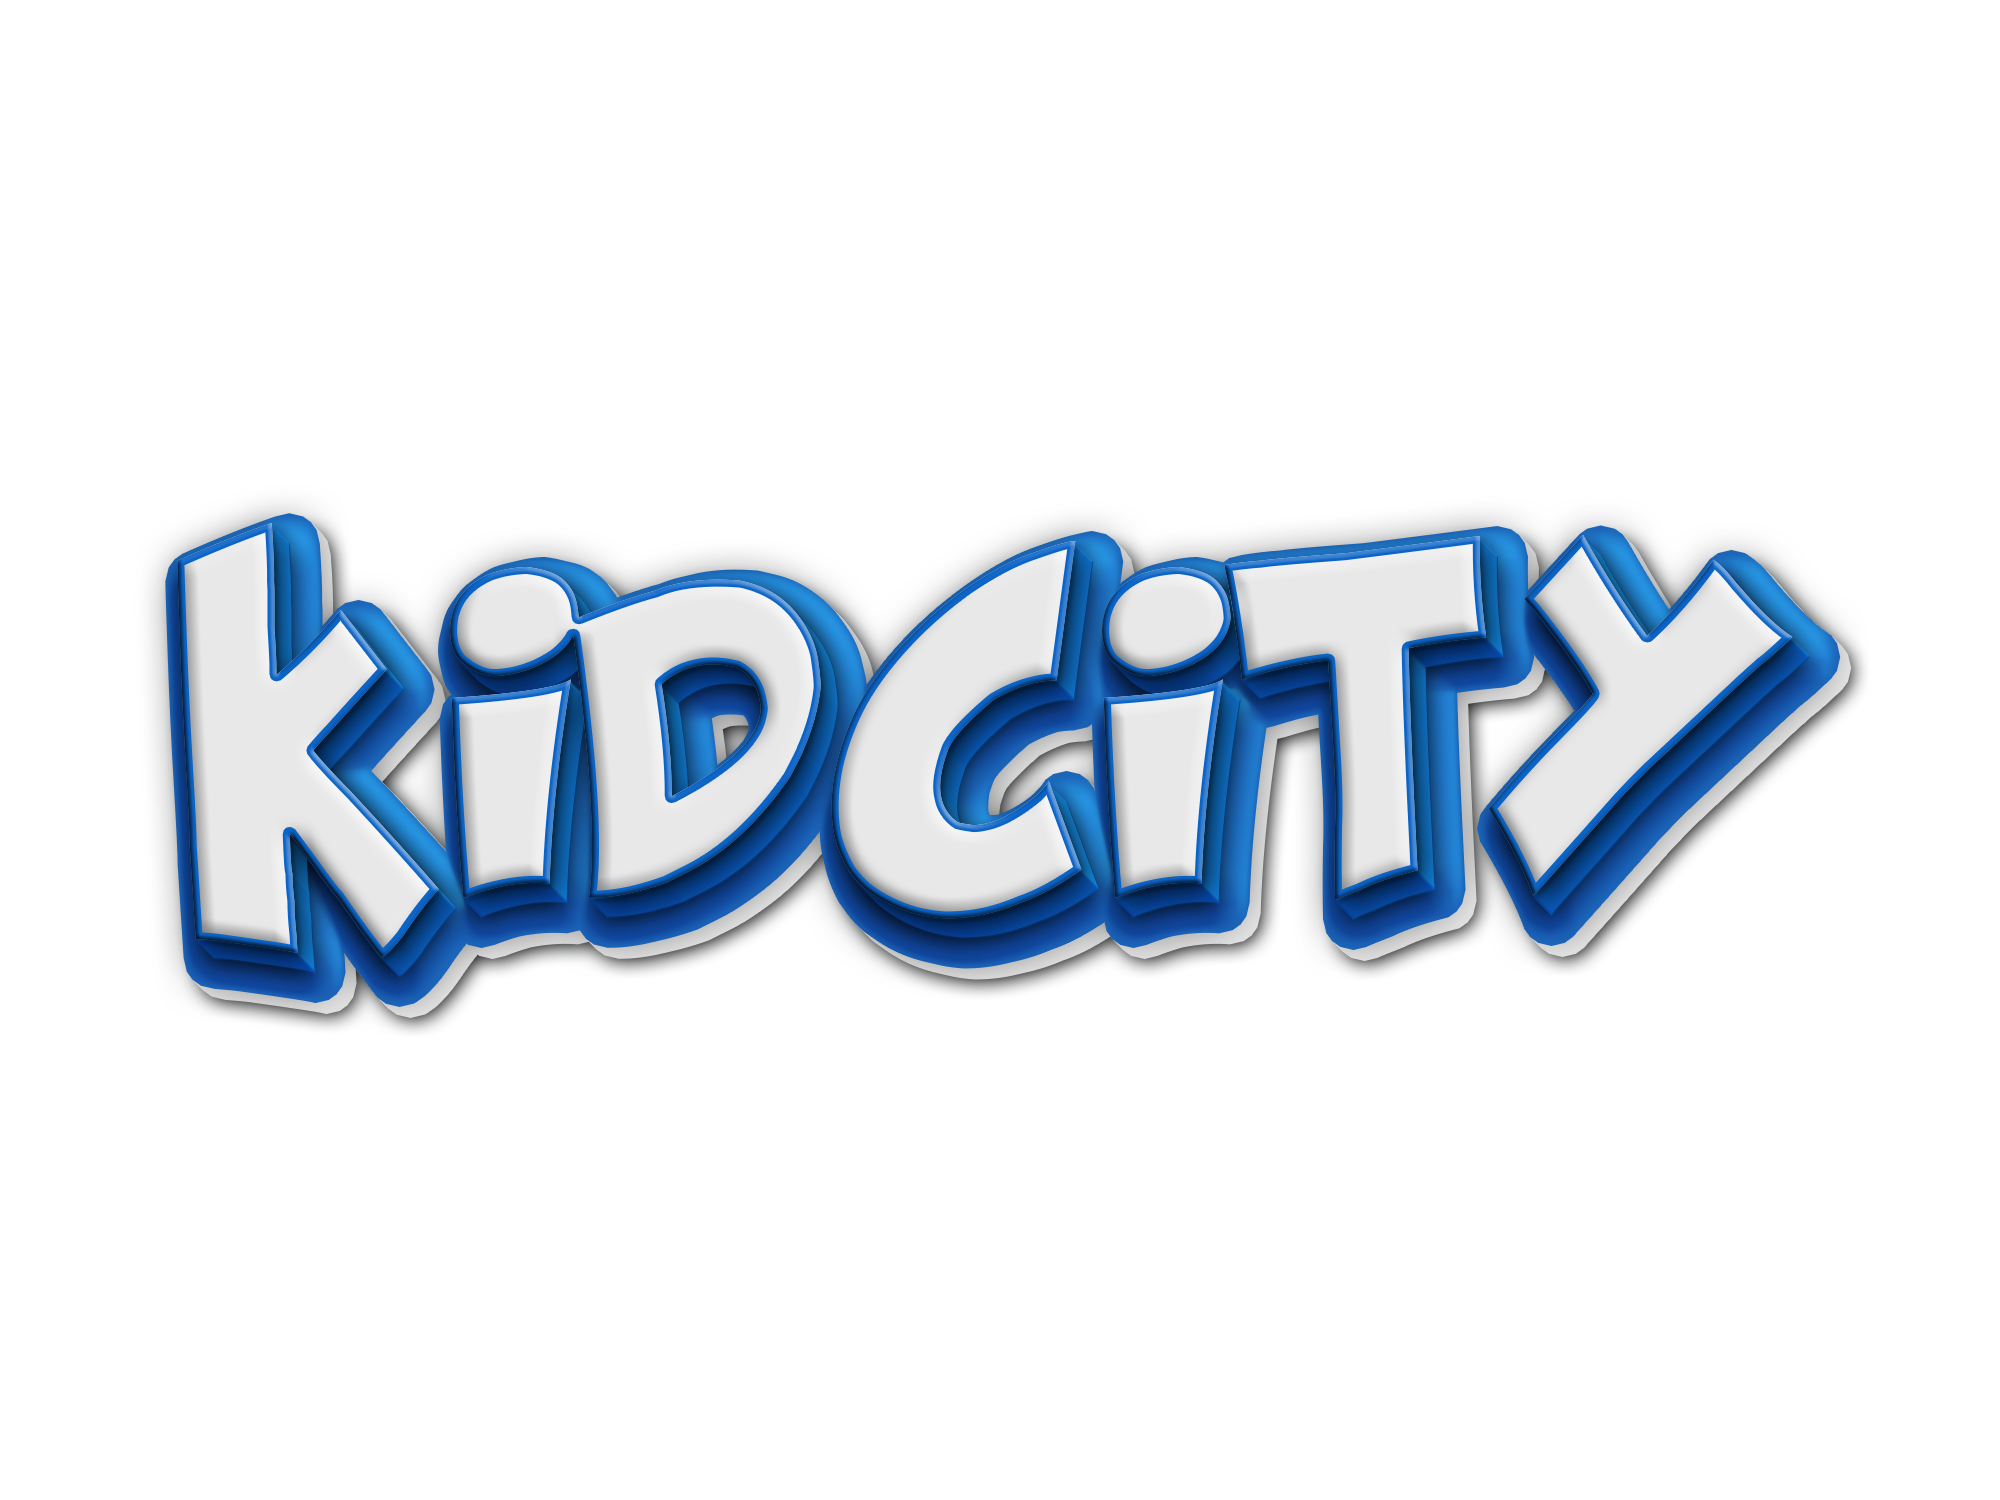 kidcity-text.png